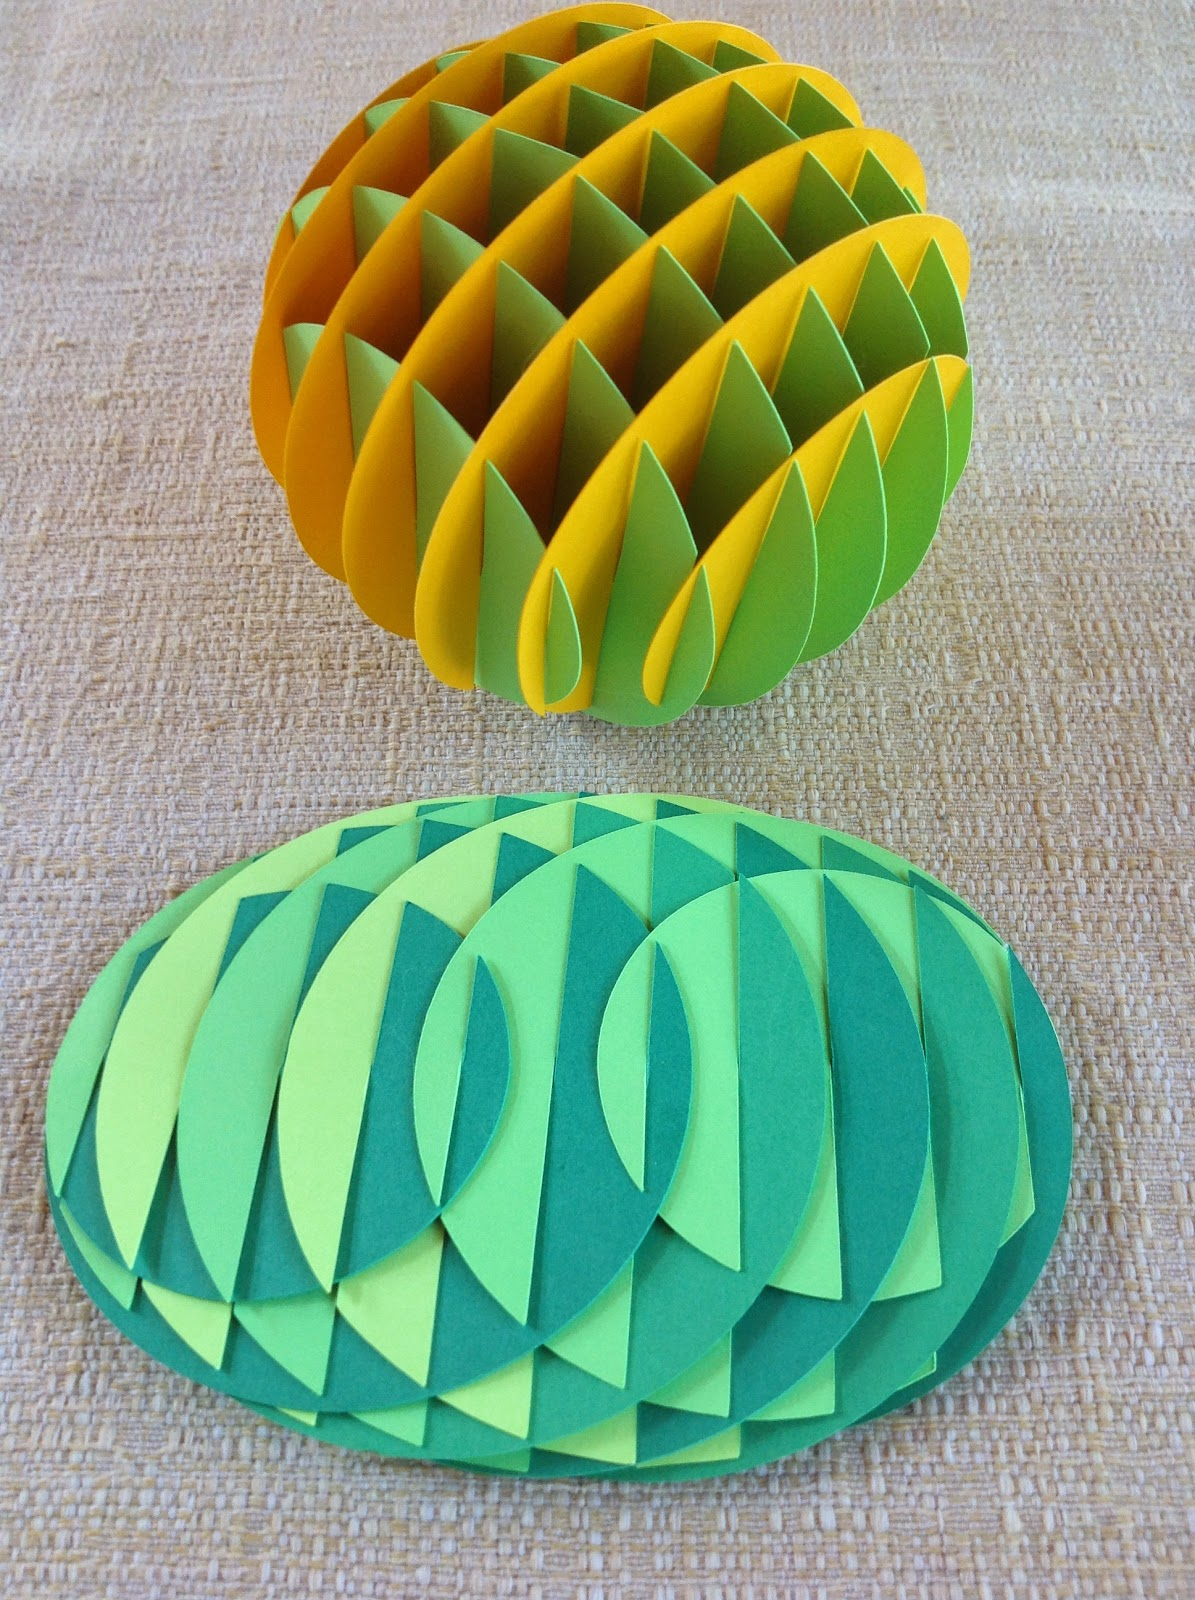 Origami sliceform and Origami - ThingLink - photo#41